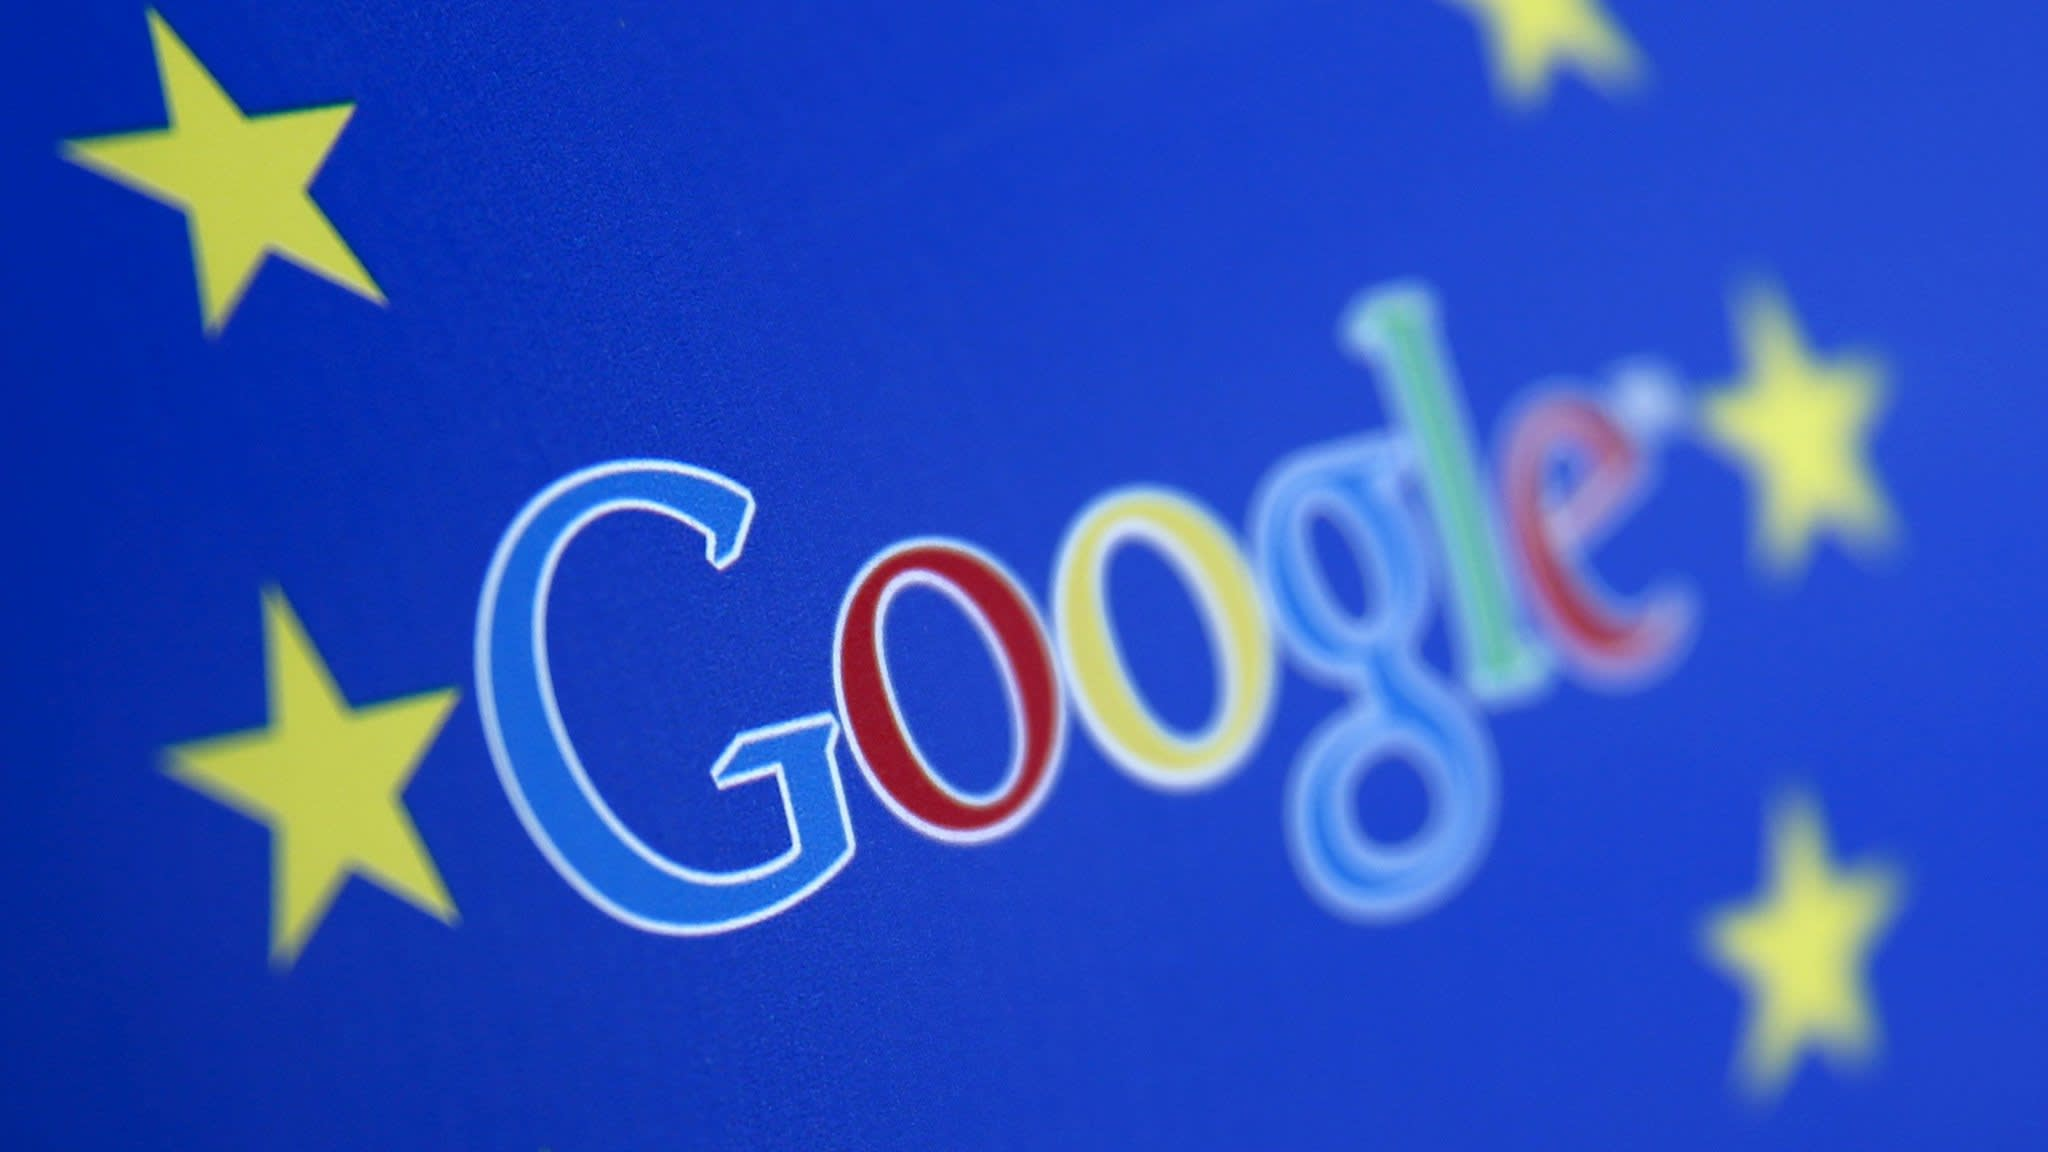 EU fines Google €2.4bn over abuse of search dominance | Financial Times